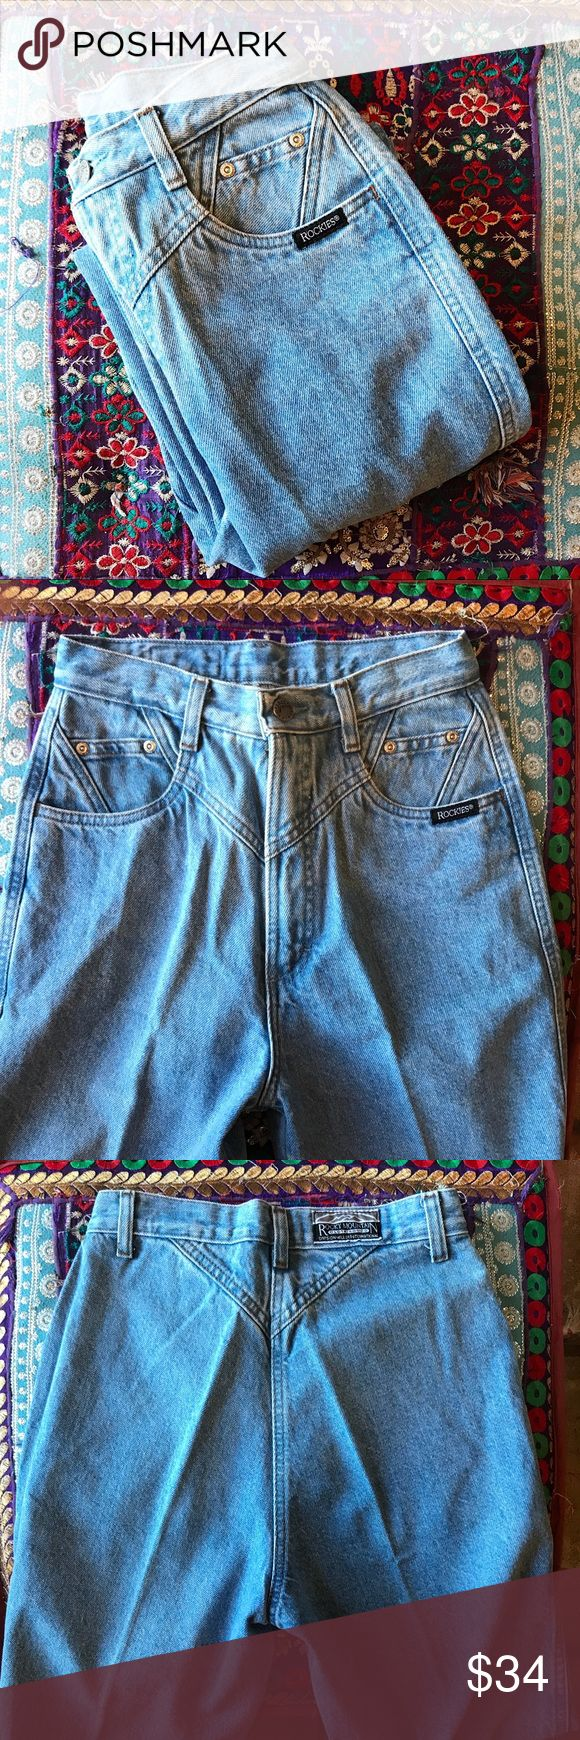 Rockies Vintage Mom Jeans High waisted Rockies vintage mom jeans  Great condition -pre loved  No back pockets  Button and zipper in great condition 100% cotton  Size 27/5 Inseam: 36  Rise: 14.5 Waist: 12.5  Leg opening: 7.5 rockies Jeans Straight Leg